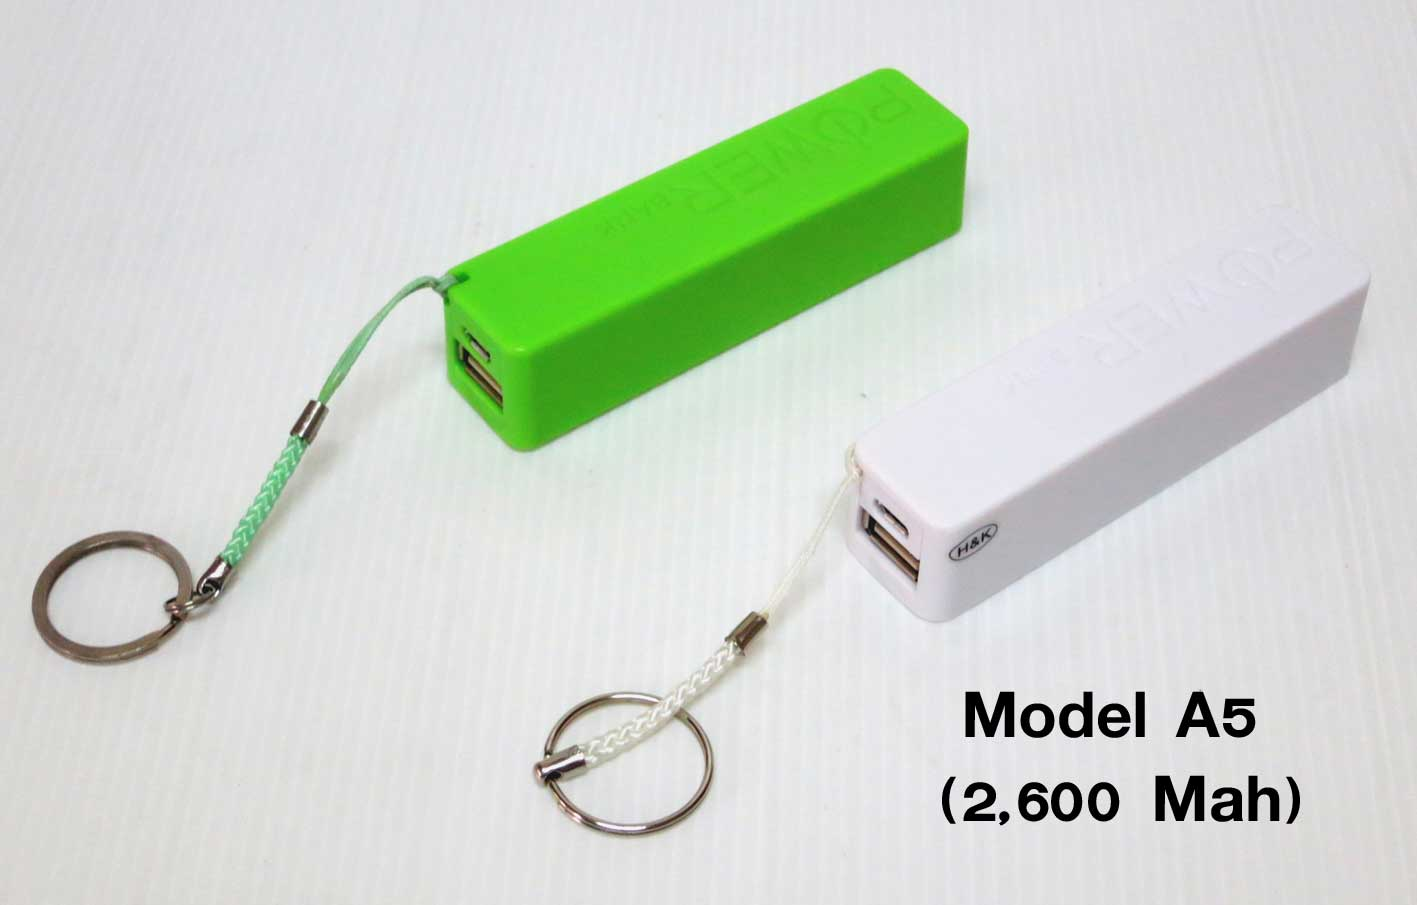 power bank Model A5 (2,600 Mah)